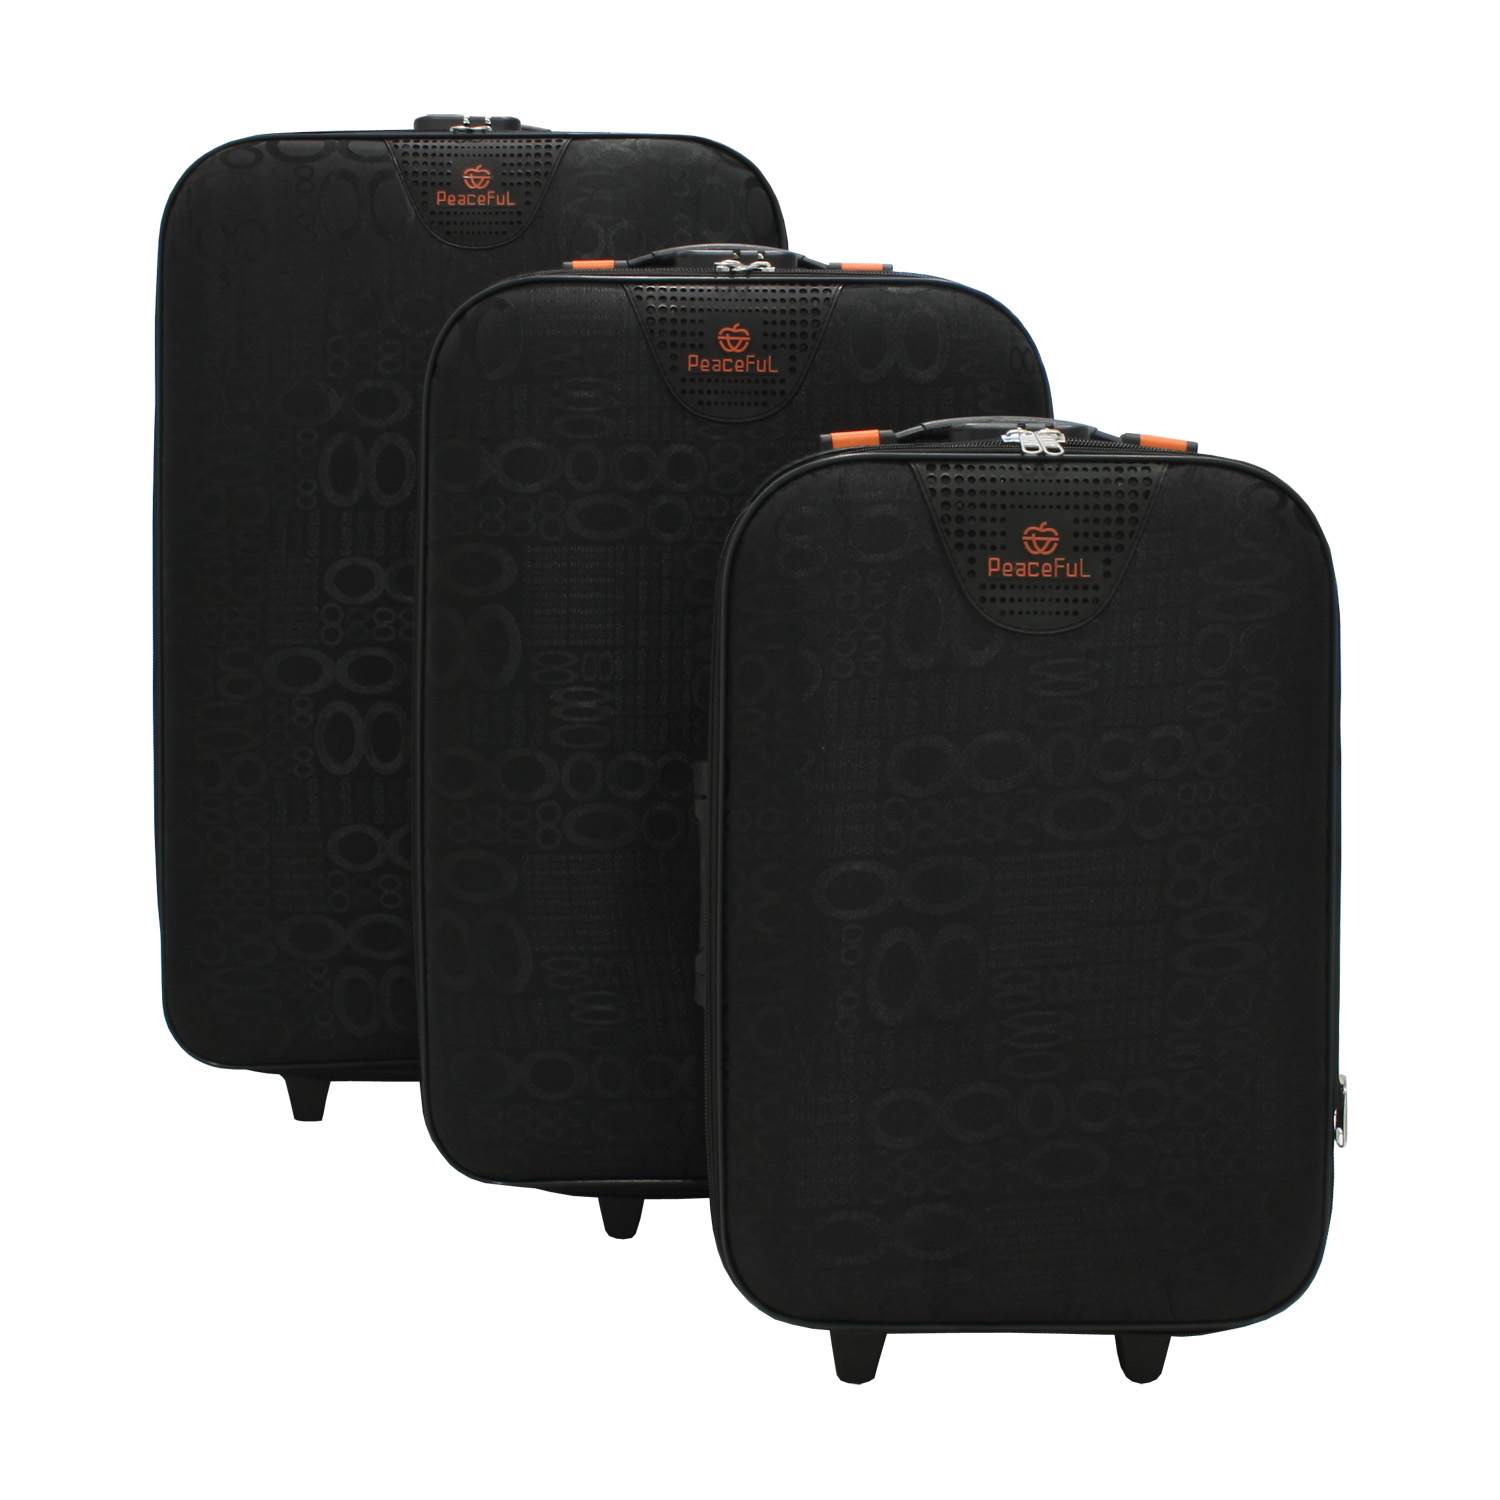 3tlg valesco valises valise de voyage trolley valise sac reiseset trolleyset ebay. Black Bedroom Furniture Sets. Home Design Ideas